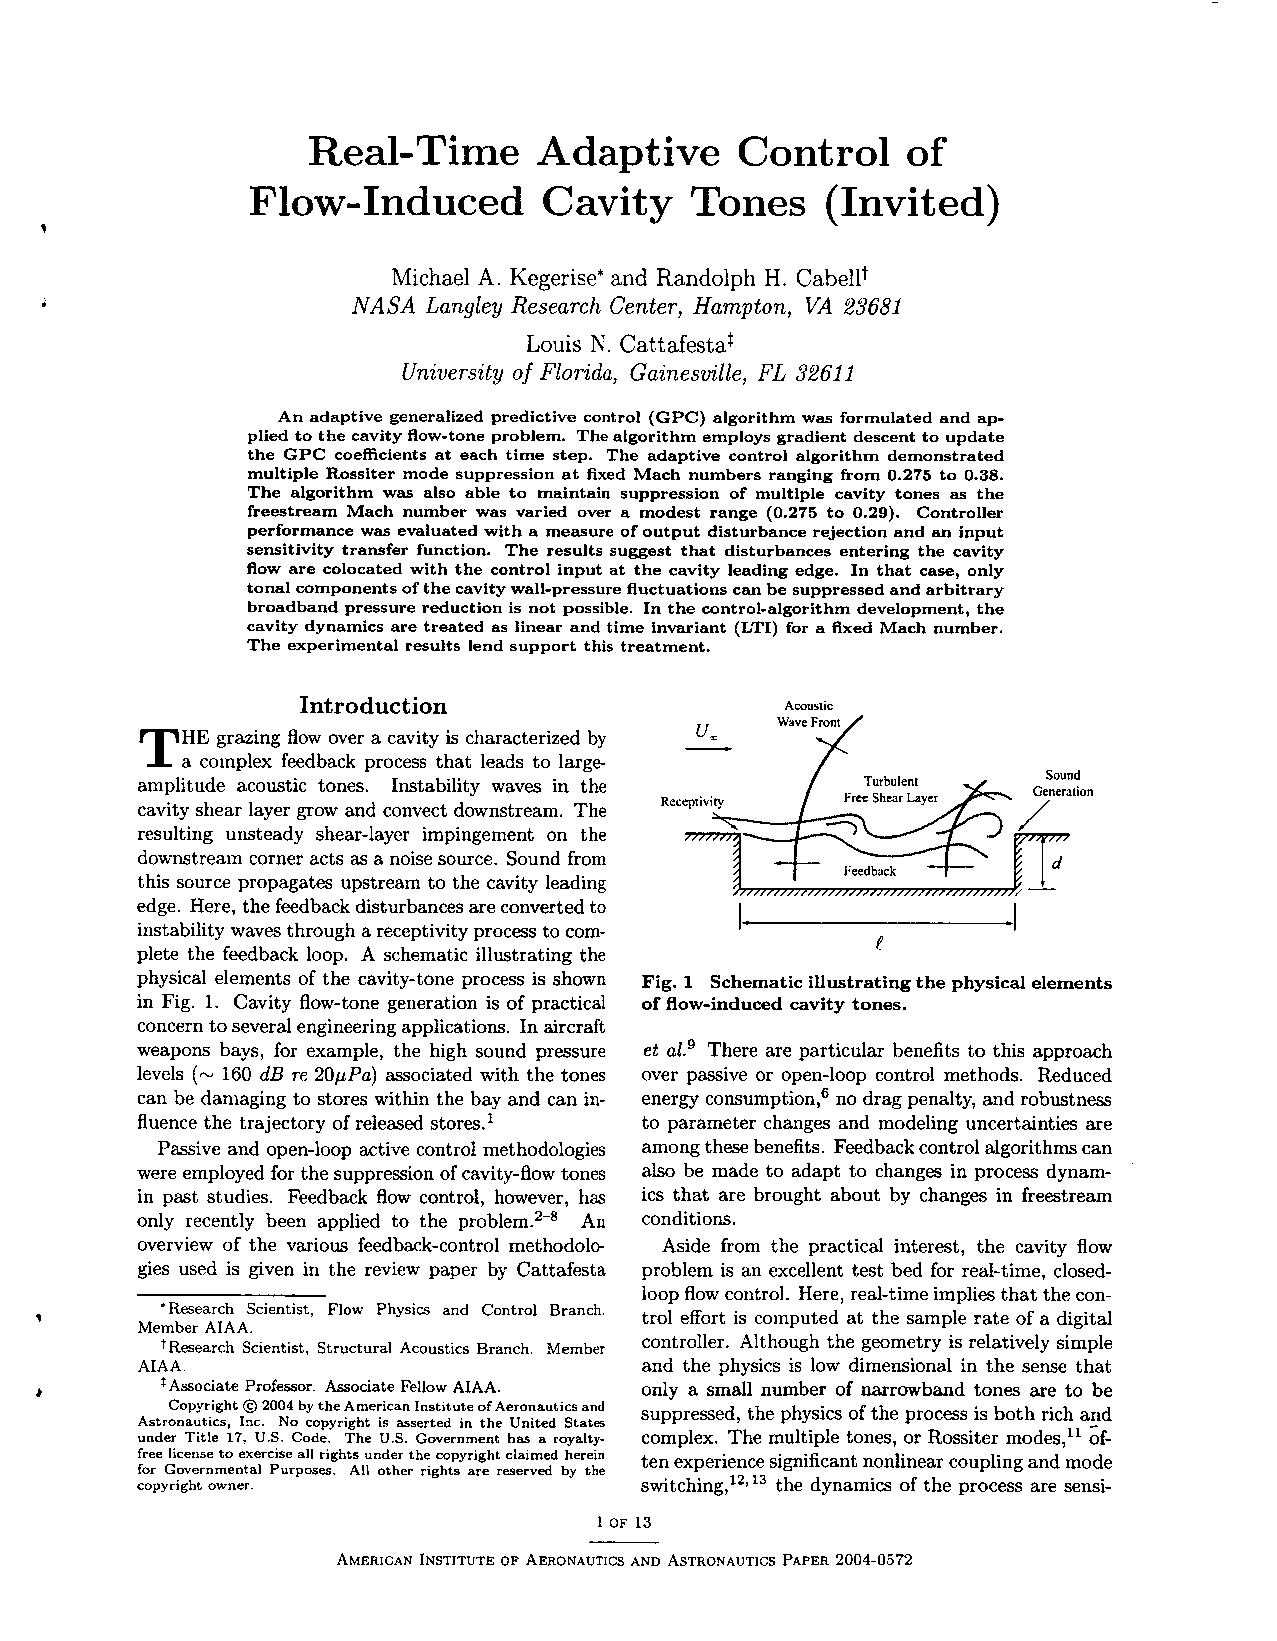 - Real-Time Adaptive Control of Flow-Induced Cavity Tones